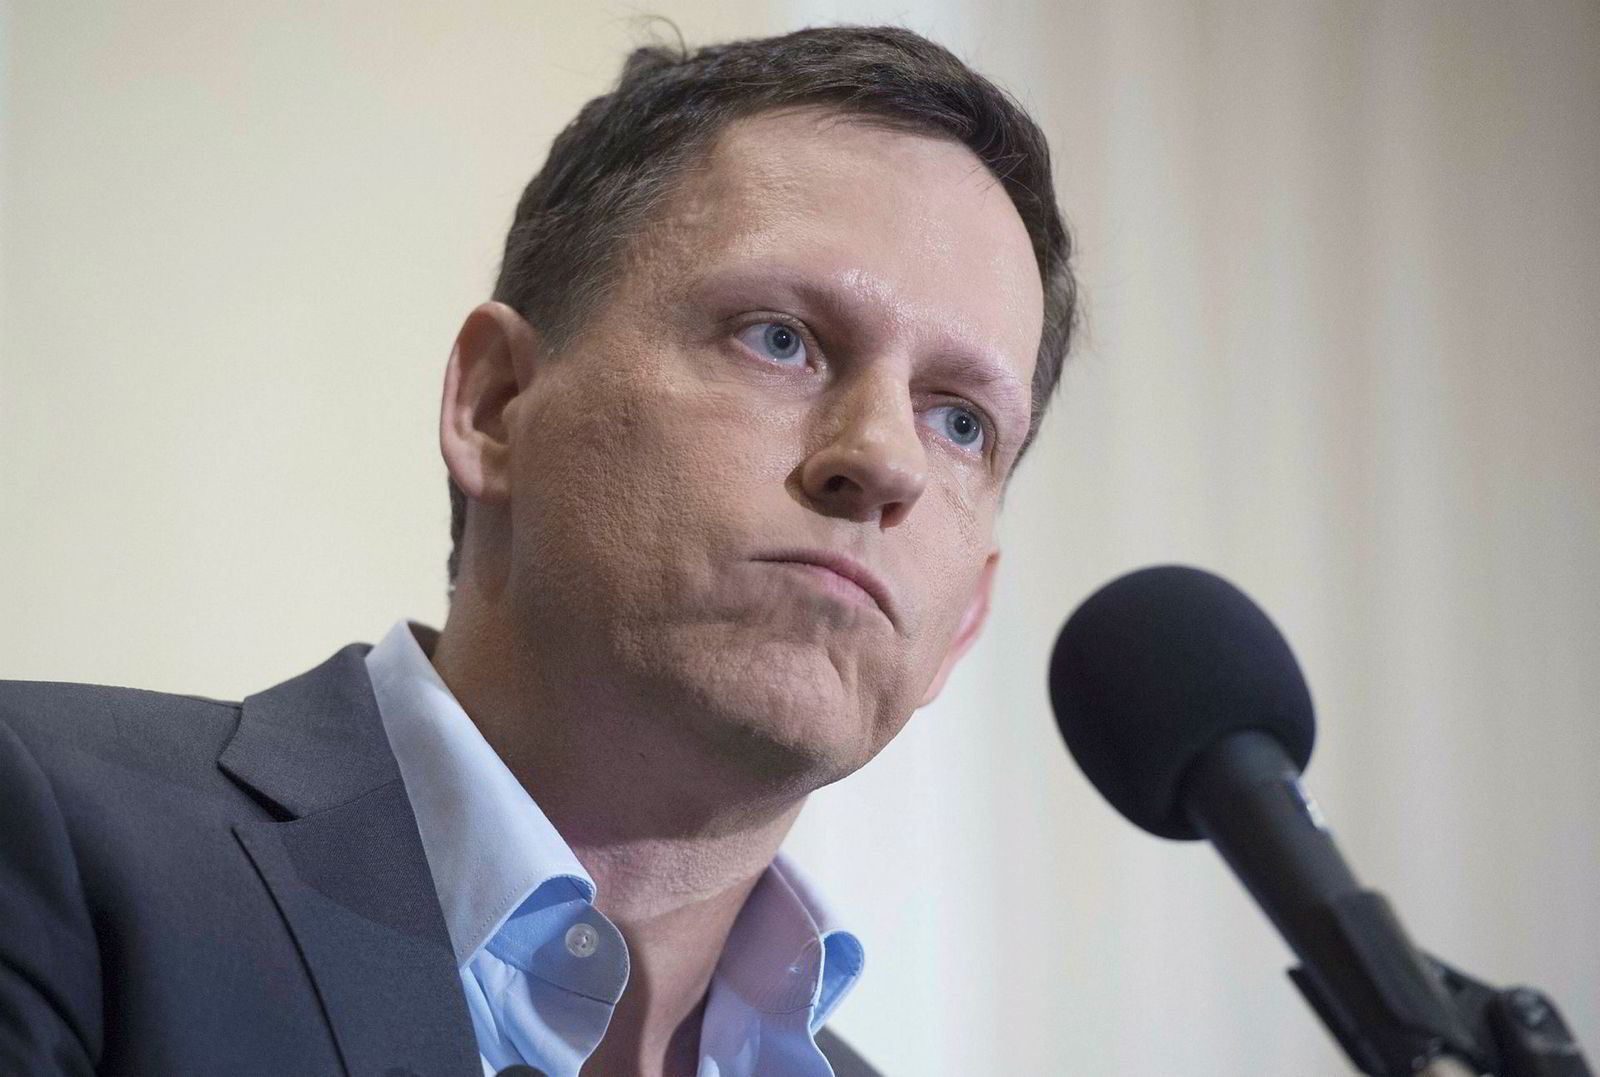 Peter Thiel, teknologiinvestor og medlem av Donald Trumps overgangsteam.